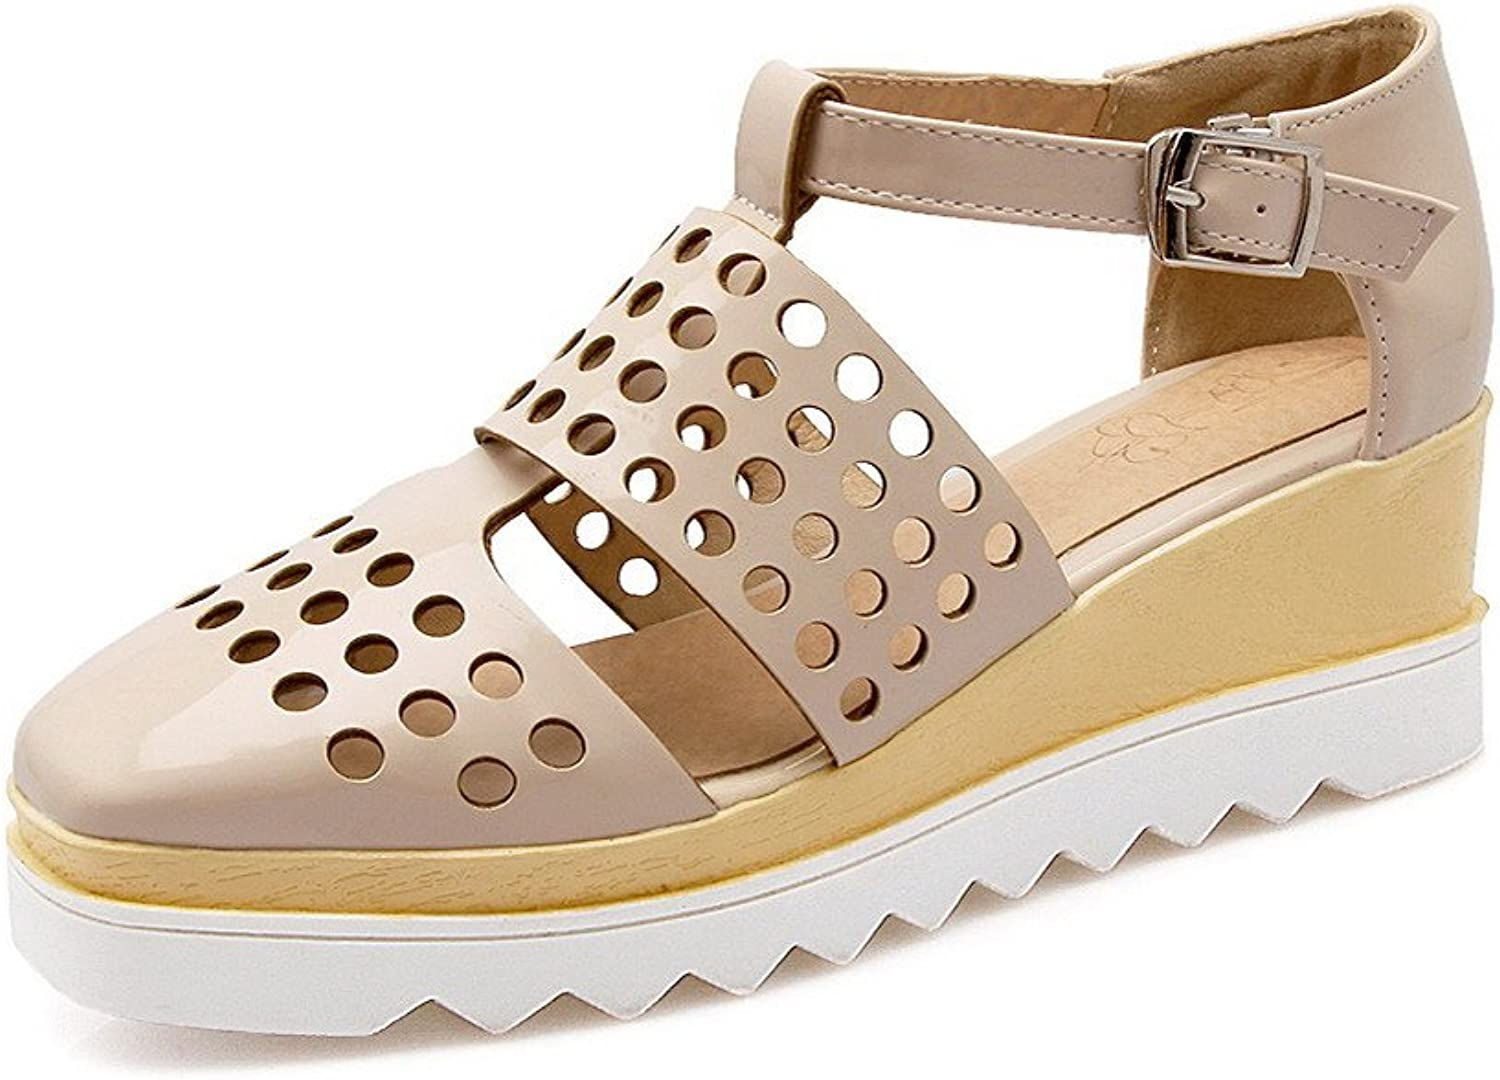 AmoonyFashion Women's Kitten-Heels Solid Buckle Soft Material Closed Toe Wedges-Sandals